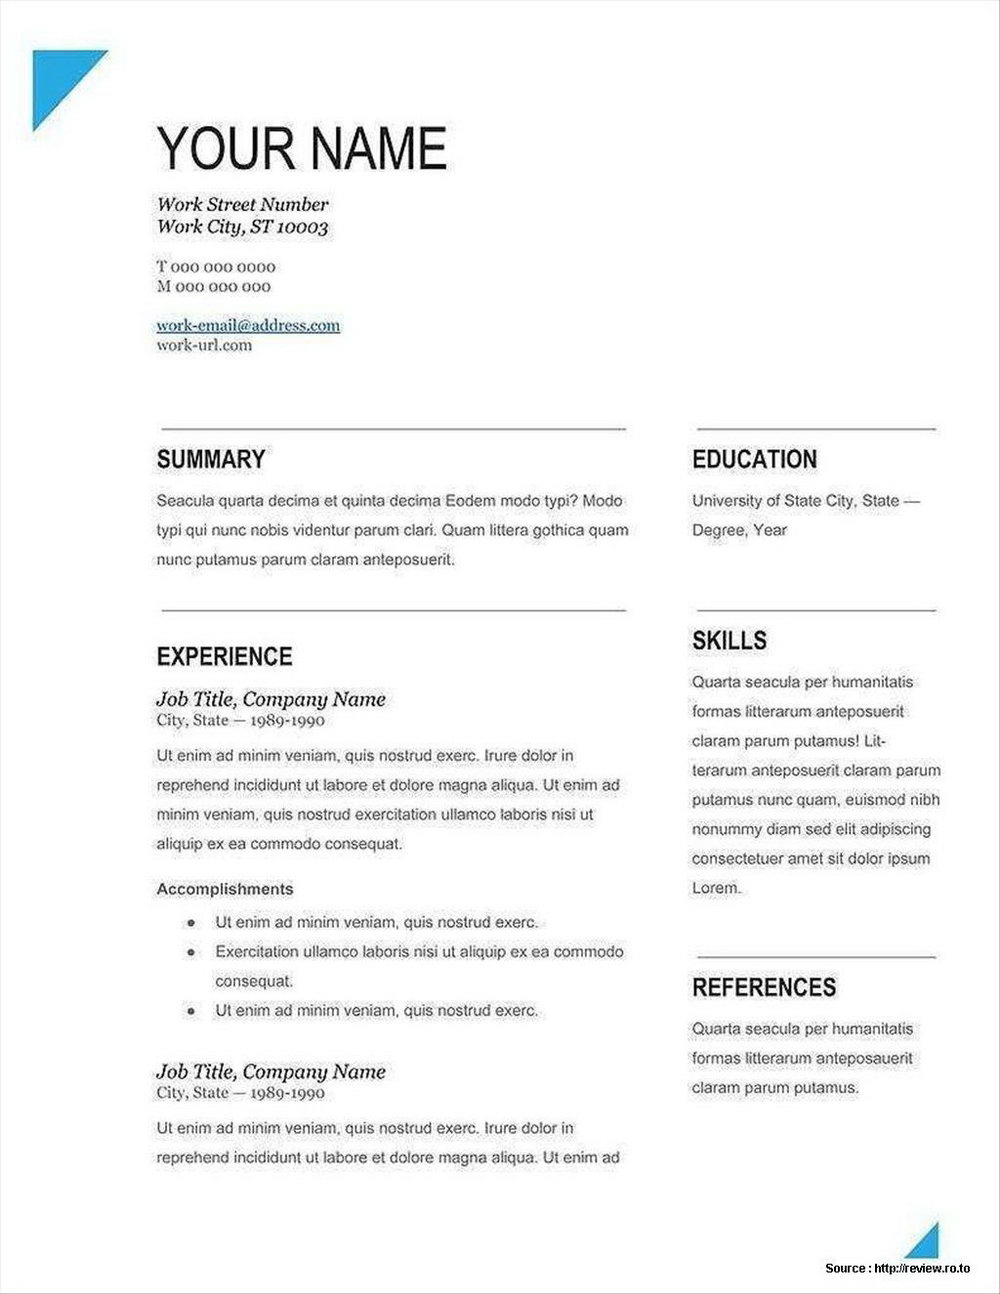 Professional Resume Writing Services Near Me